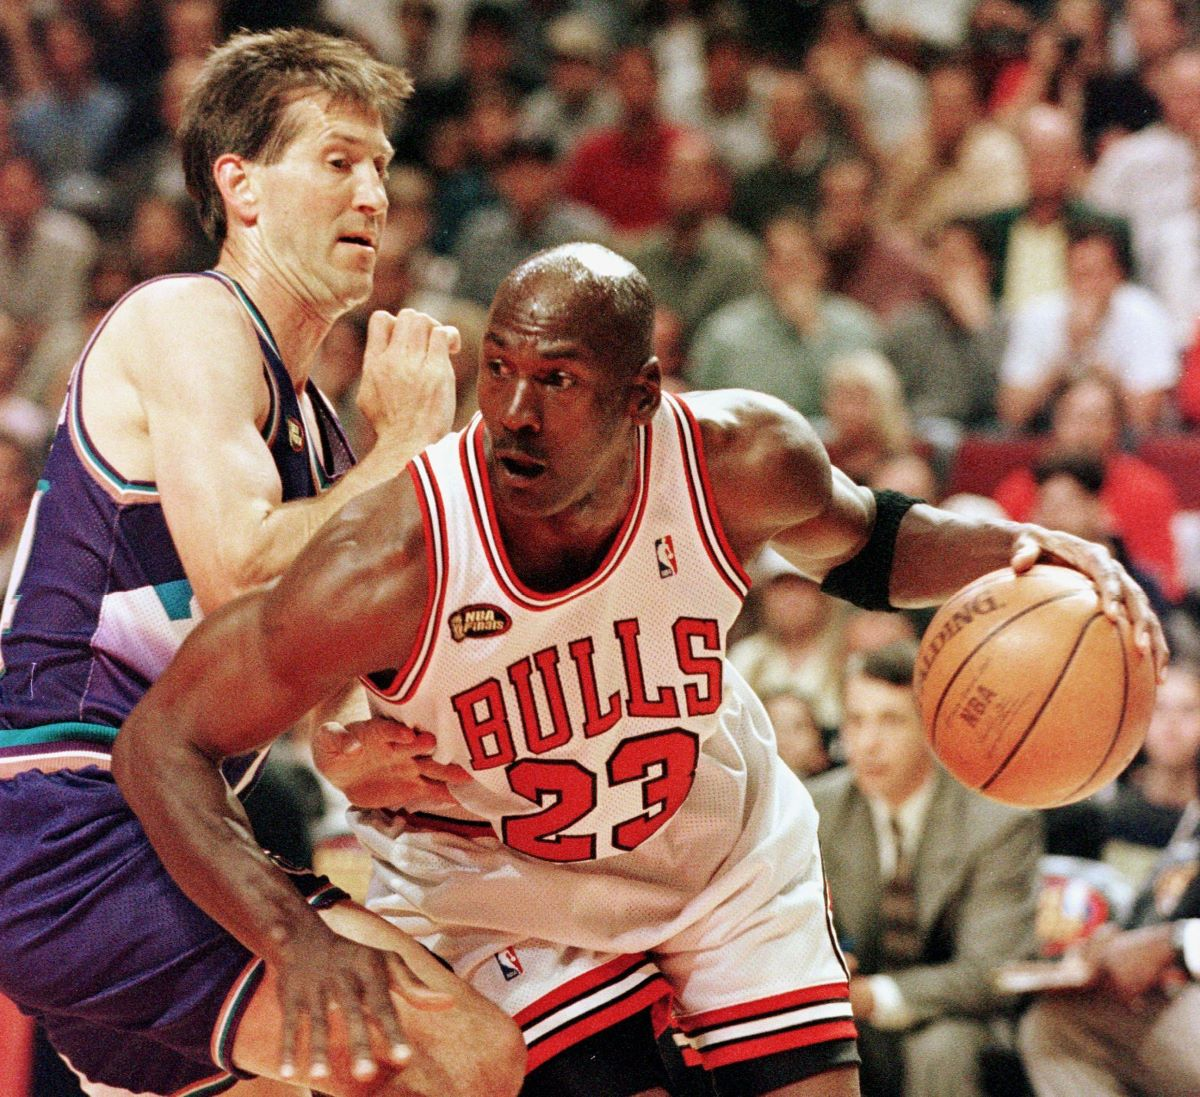 Michael Jordan Talked Trash to His Opponents so He Could Get Into His Own Head and Put Pressure on Himself